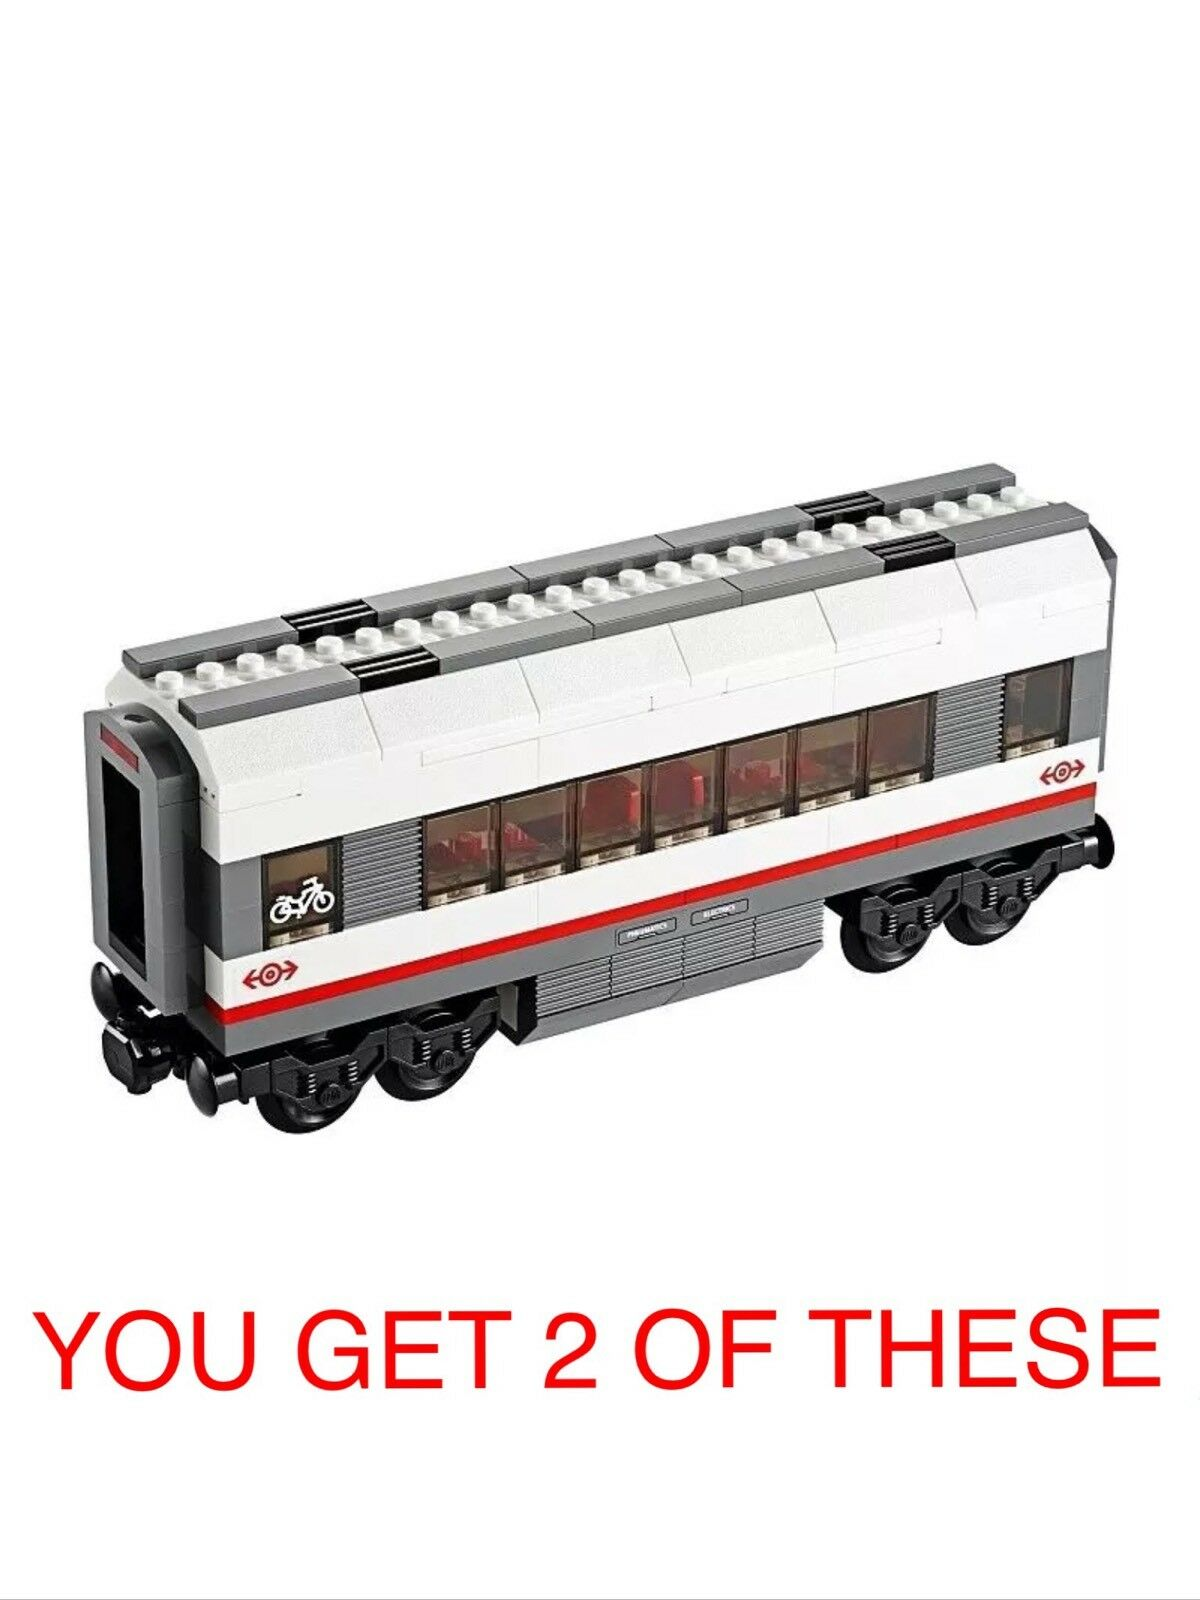 2 X LEGO CITY TRAINS, MIDDLE CARRIAGE FROM SET 60051 HIGH-SPEED TRAIN. B NEW